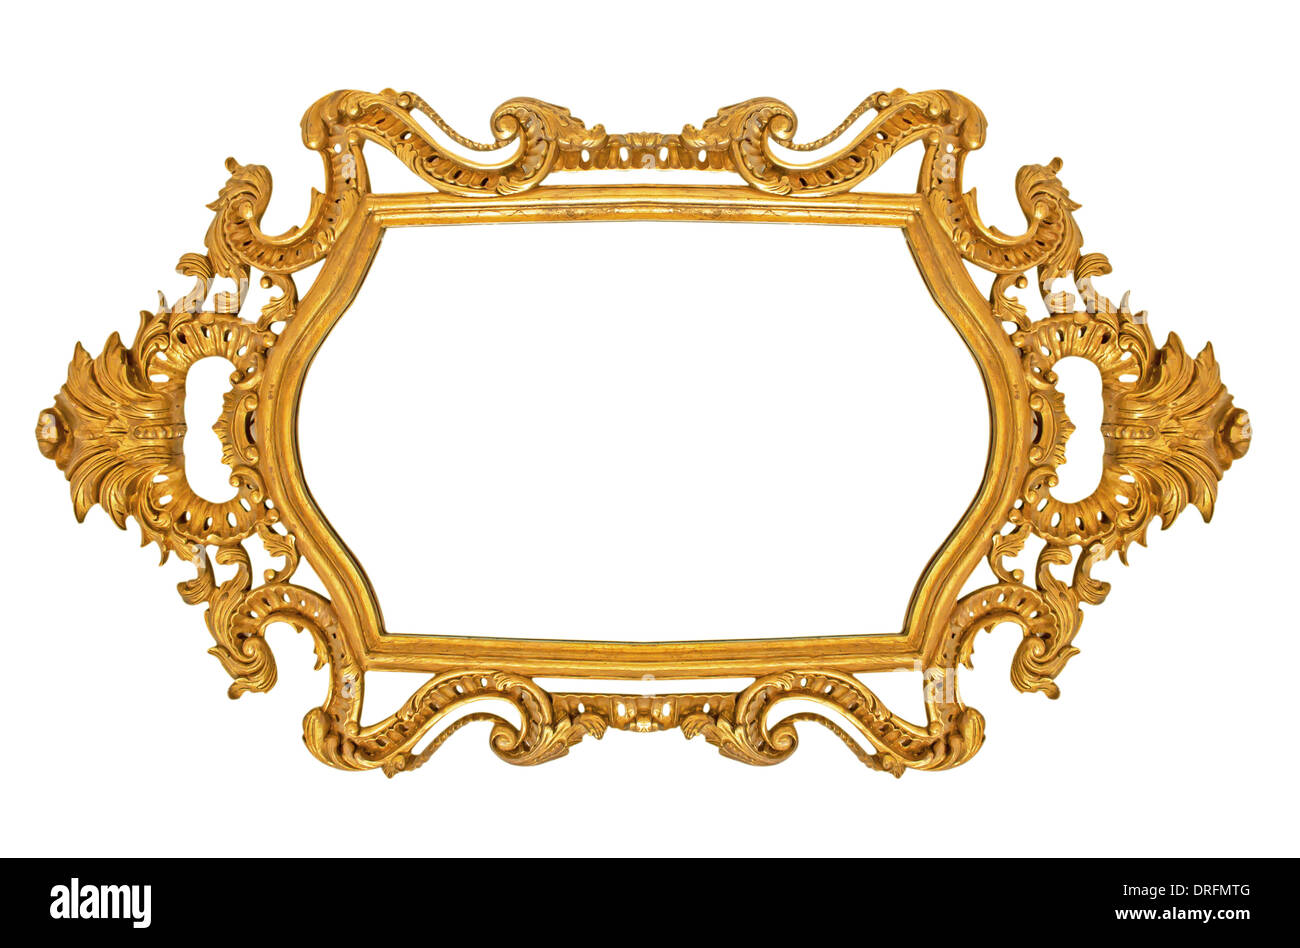 Old Antique Gold Picture Frame Wall Wallpaper Decorative Objects Isolated White Background